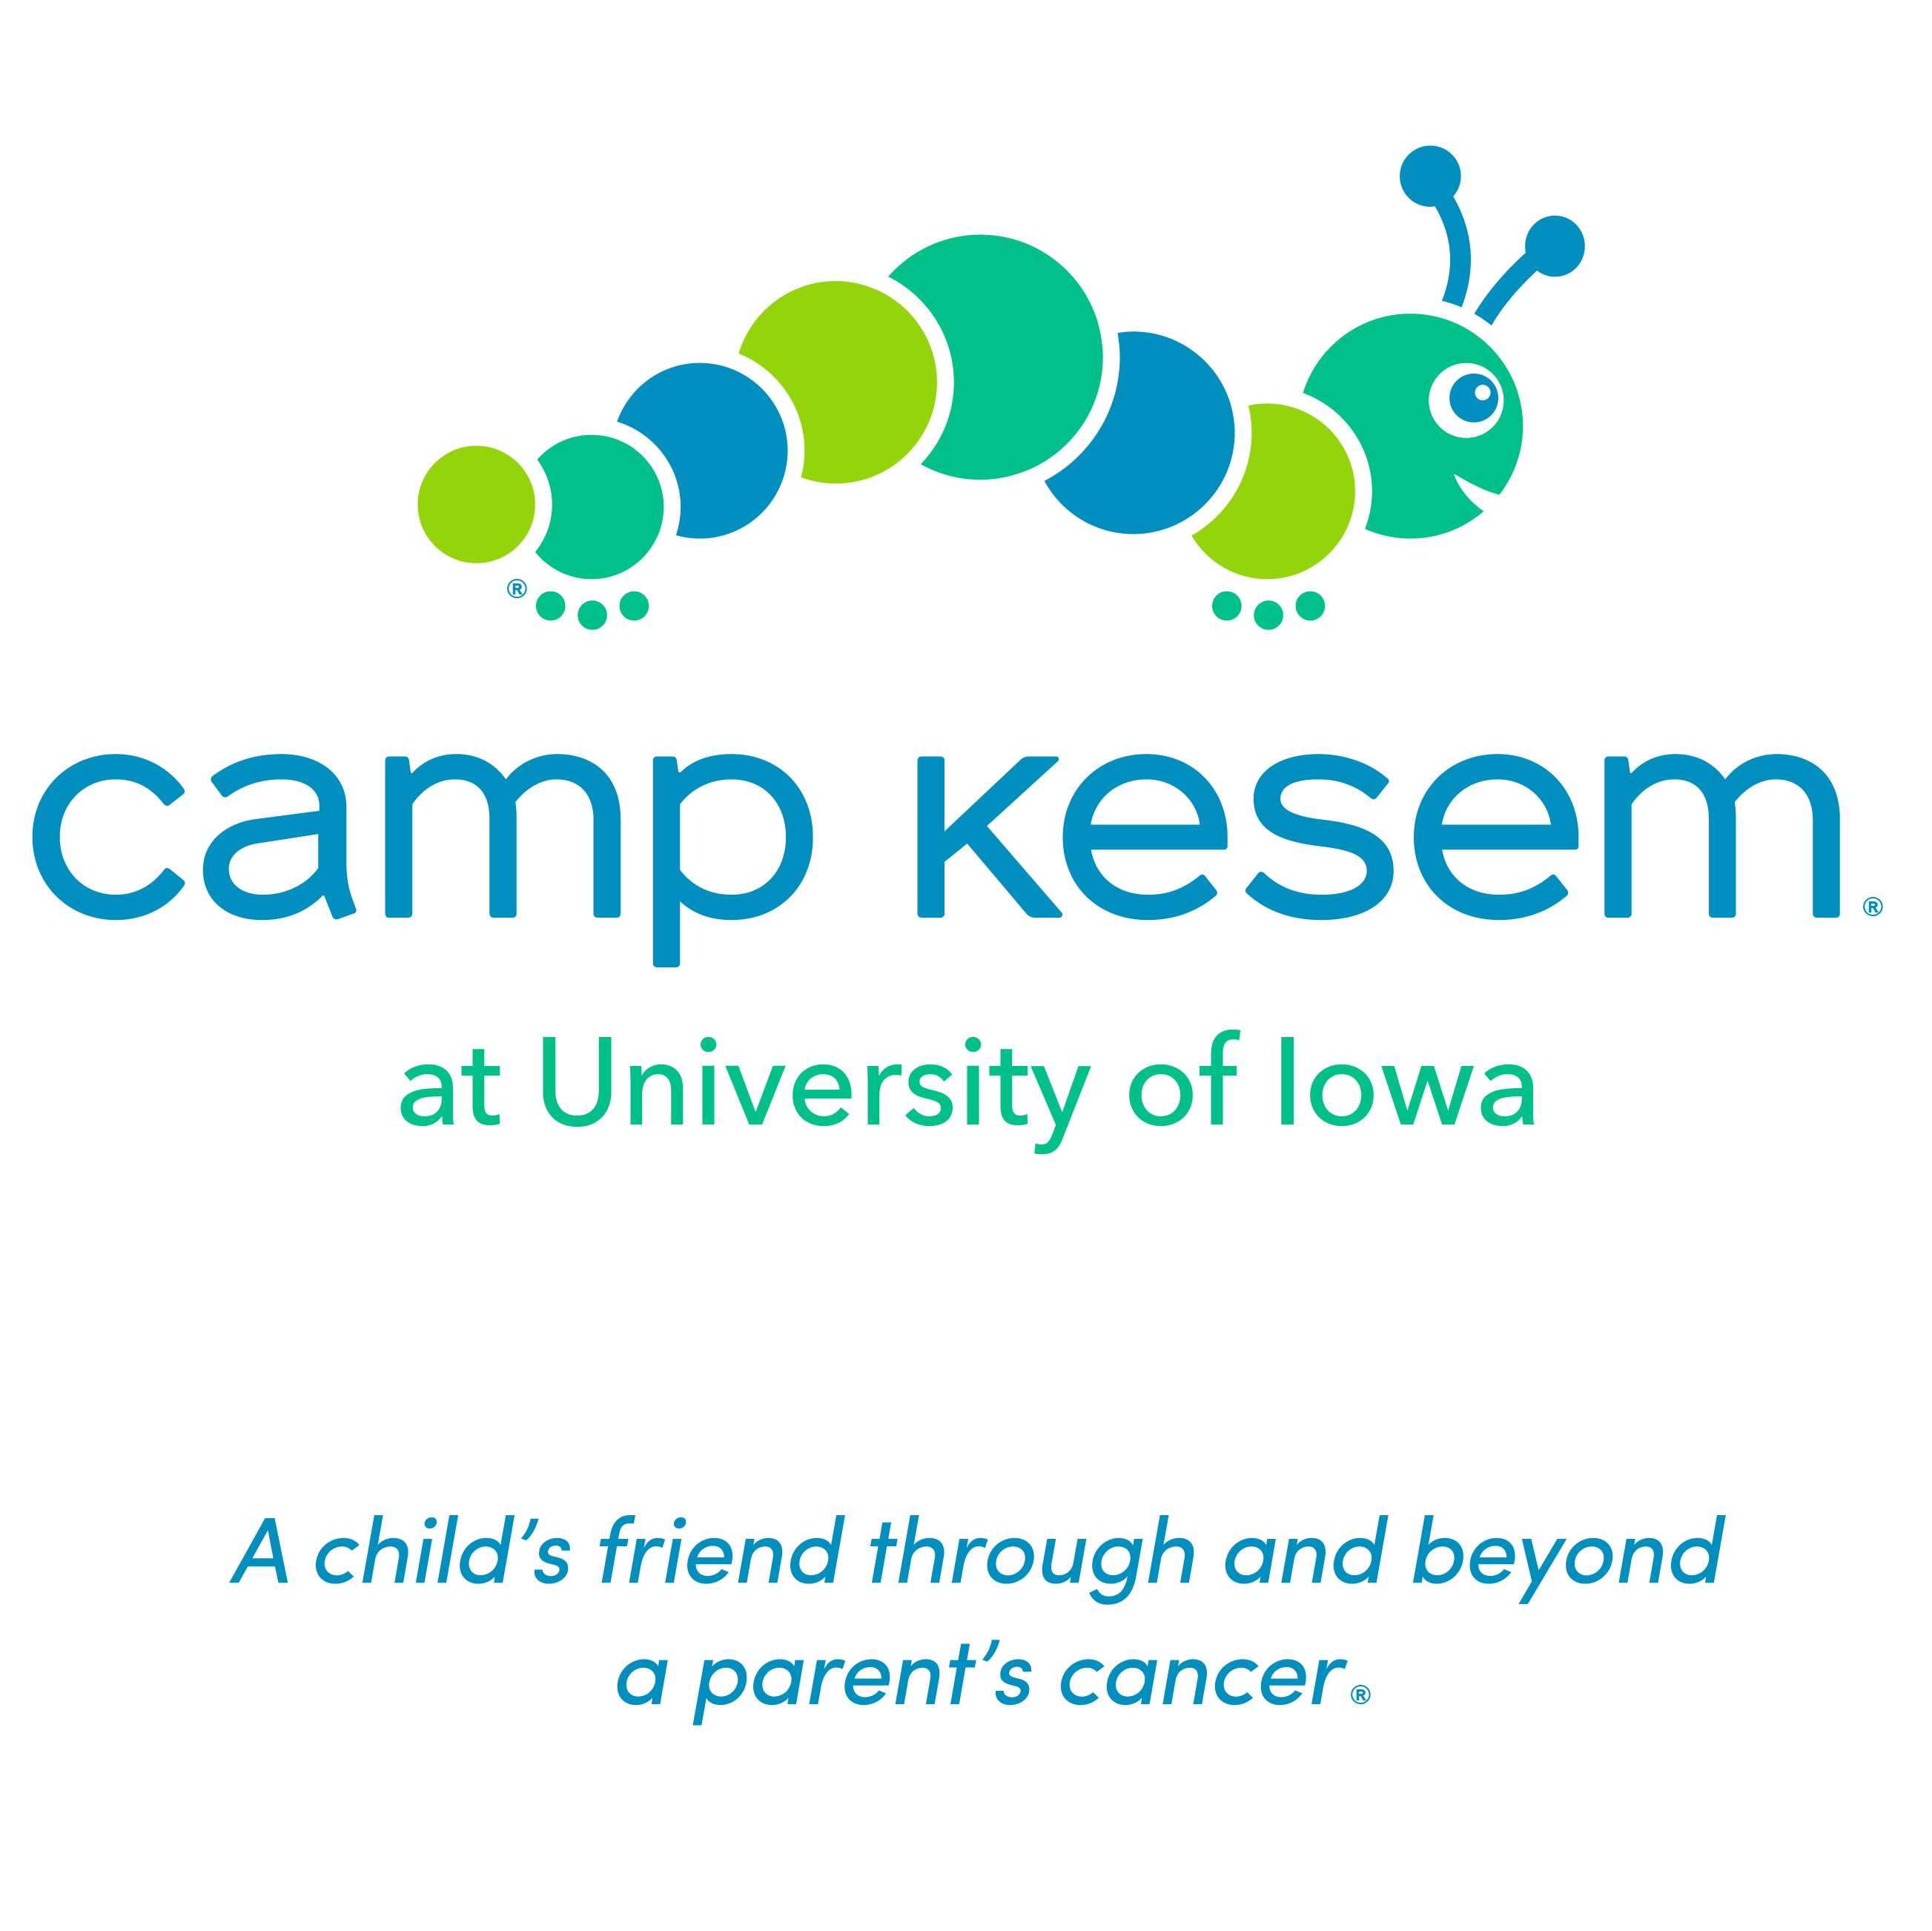 Camp Kesem at University of Iowa